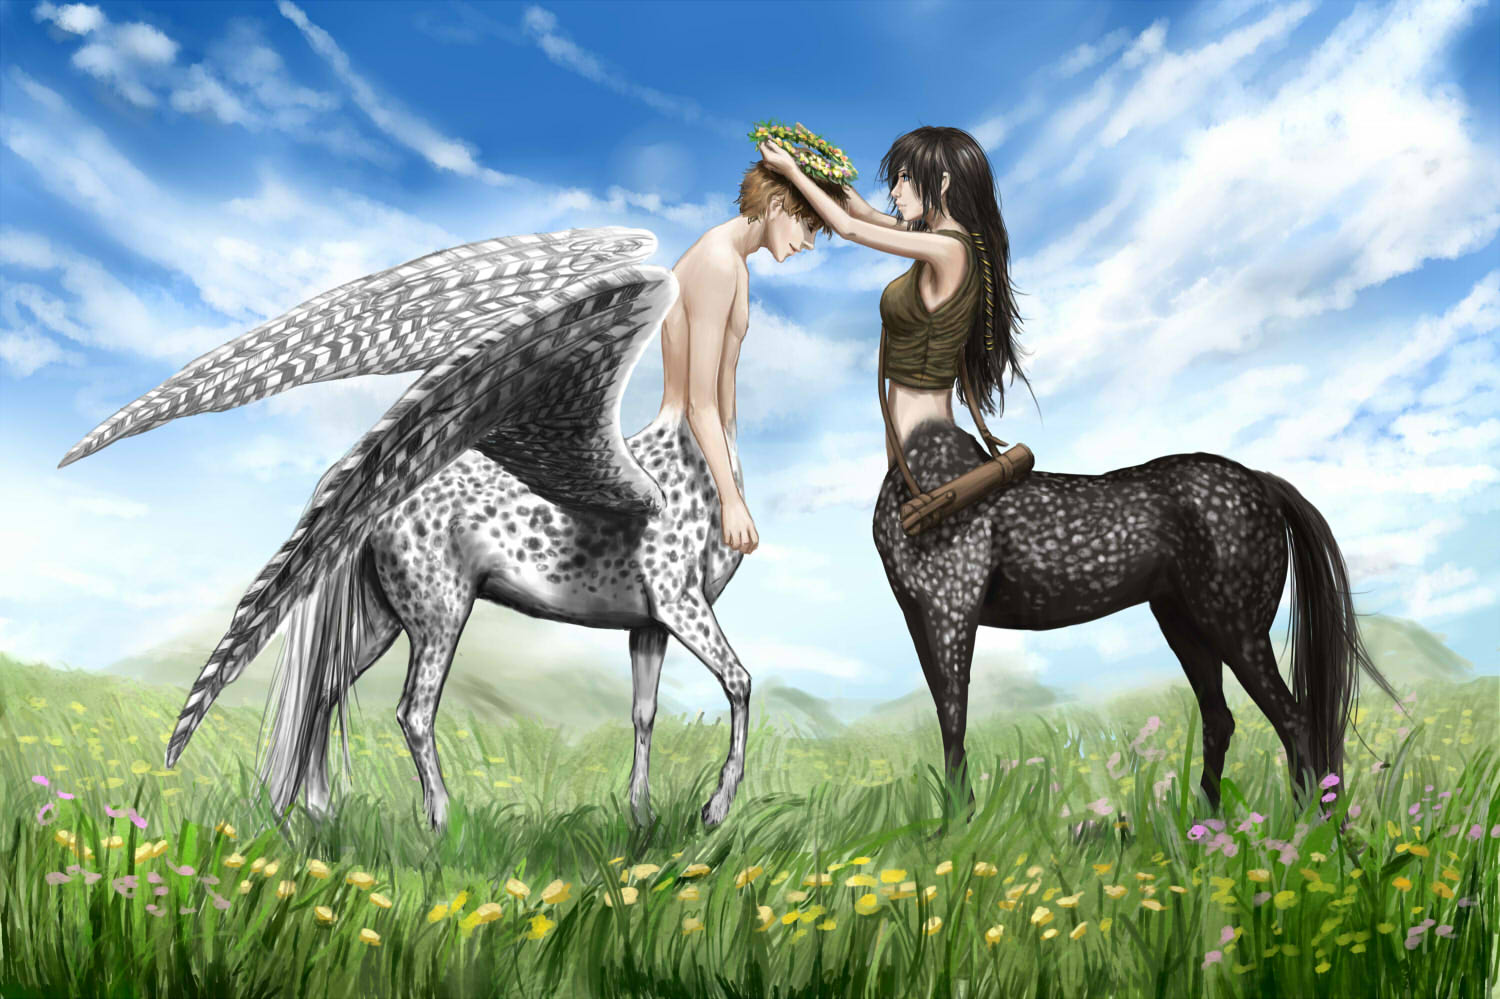 centaur_couple_by_yet_one_more_idiot-d6f